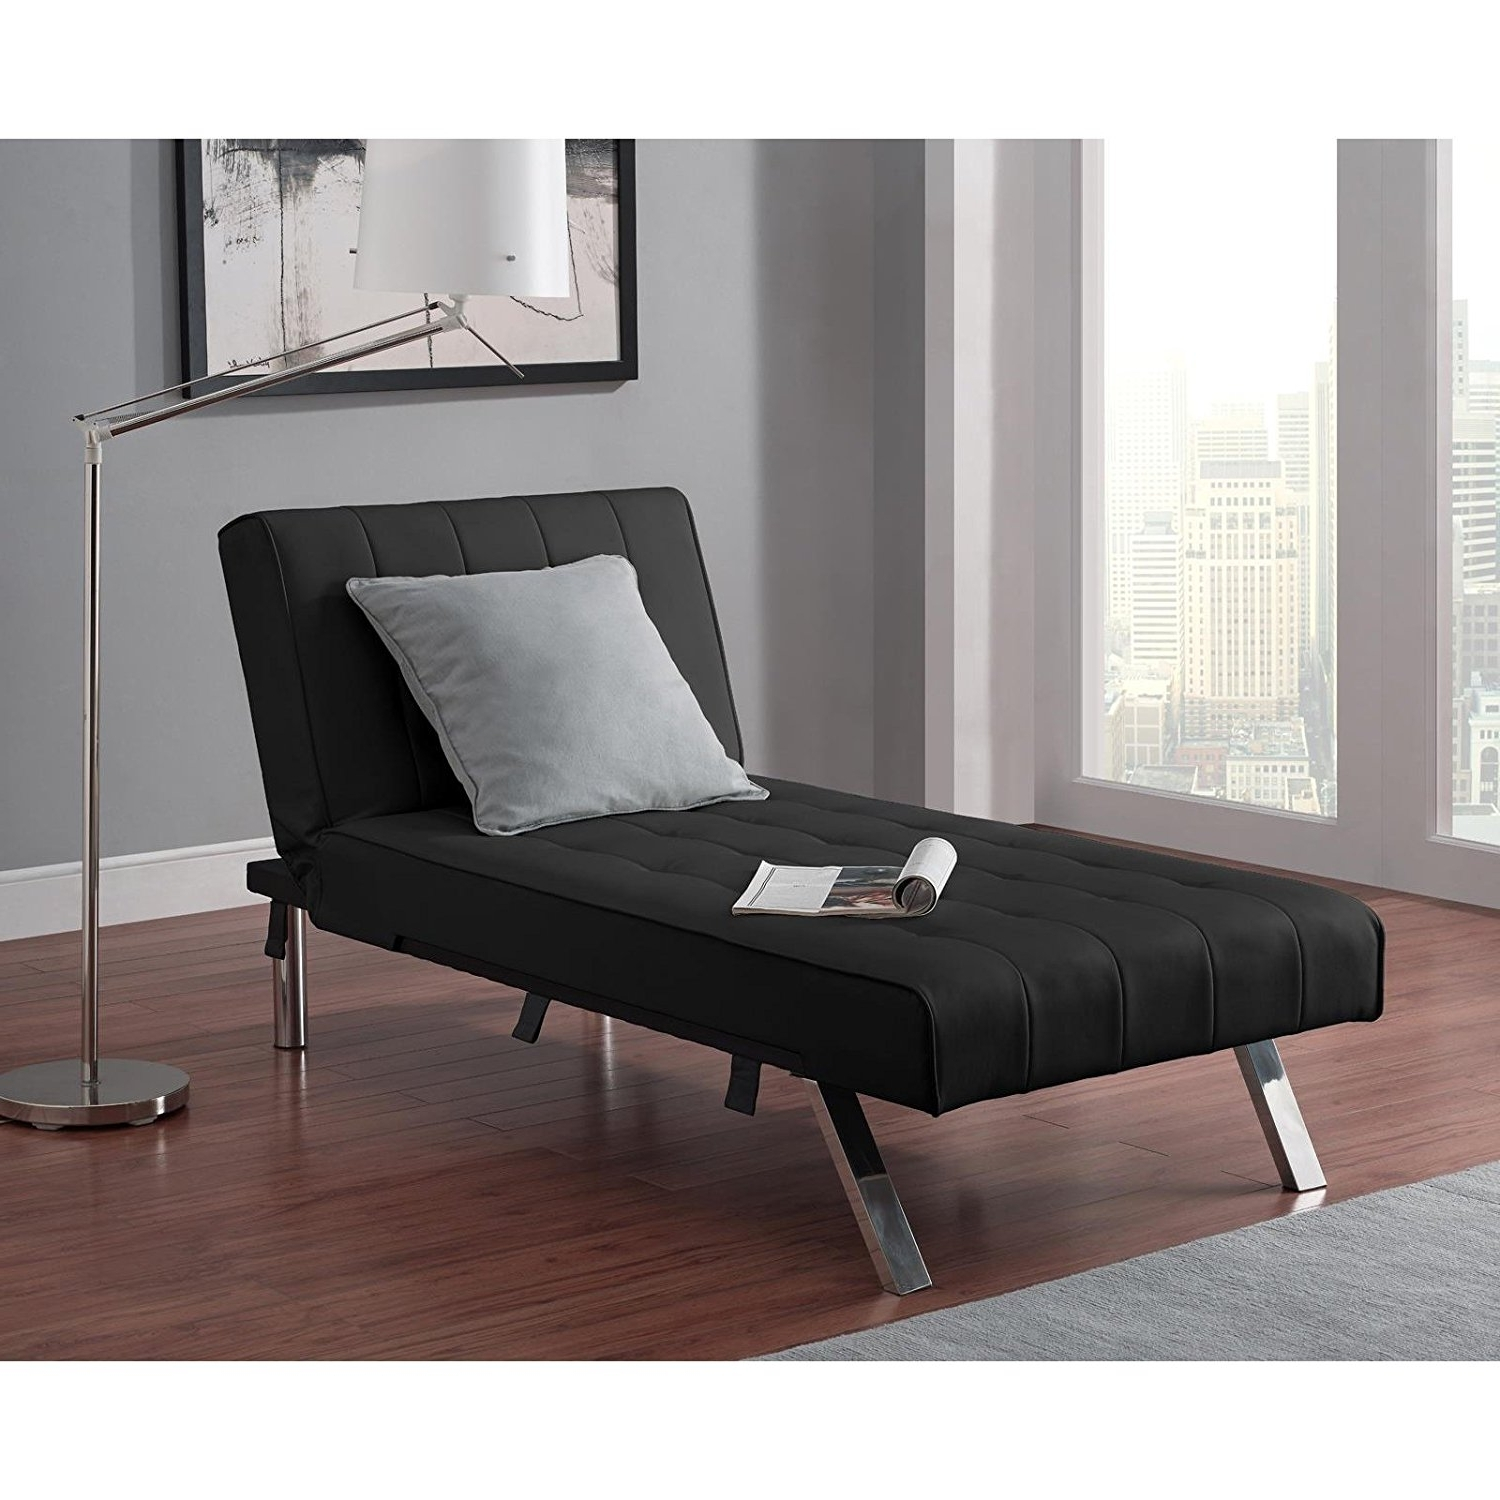 Futons With Chaise Lounge Regarding Most Recent Amazon: Emily Futon With Chaise Lounger Super Bonus Set Black (View 2 of 15)